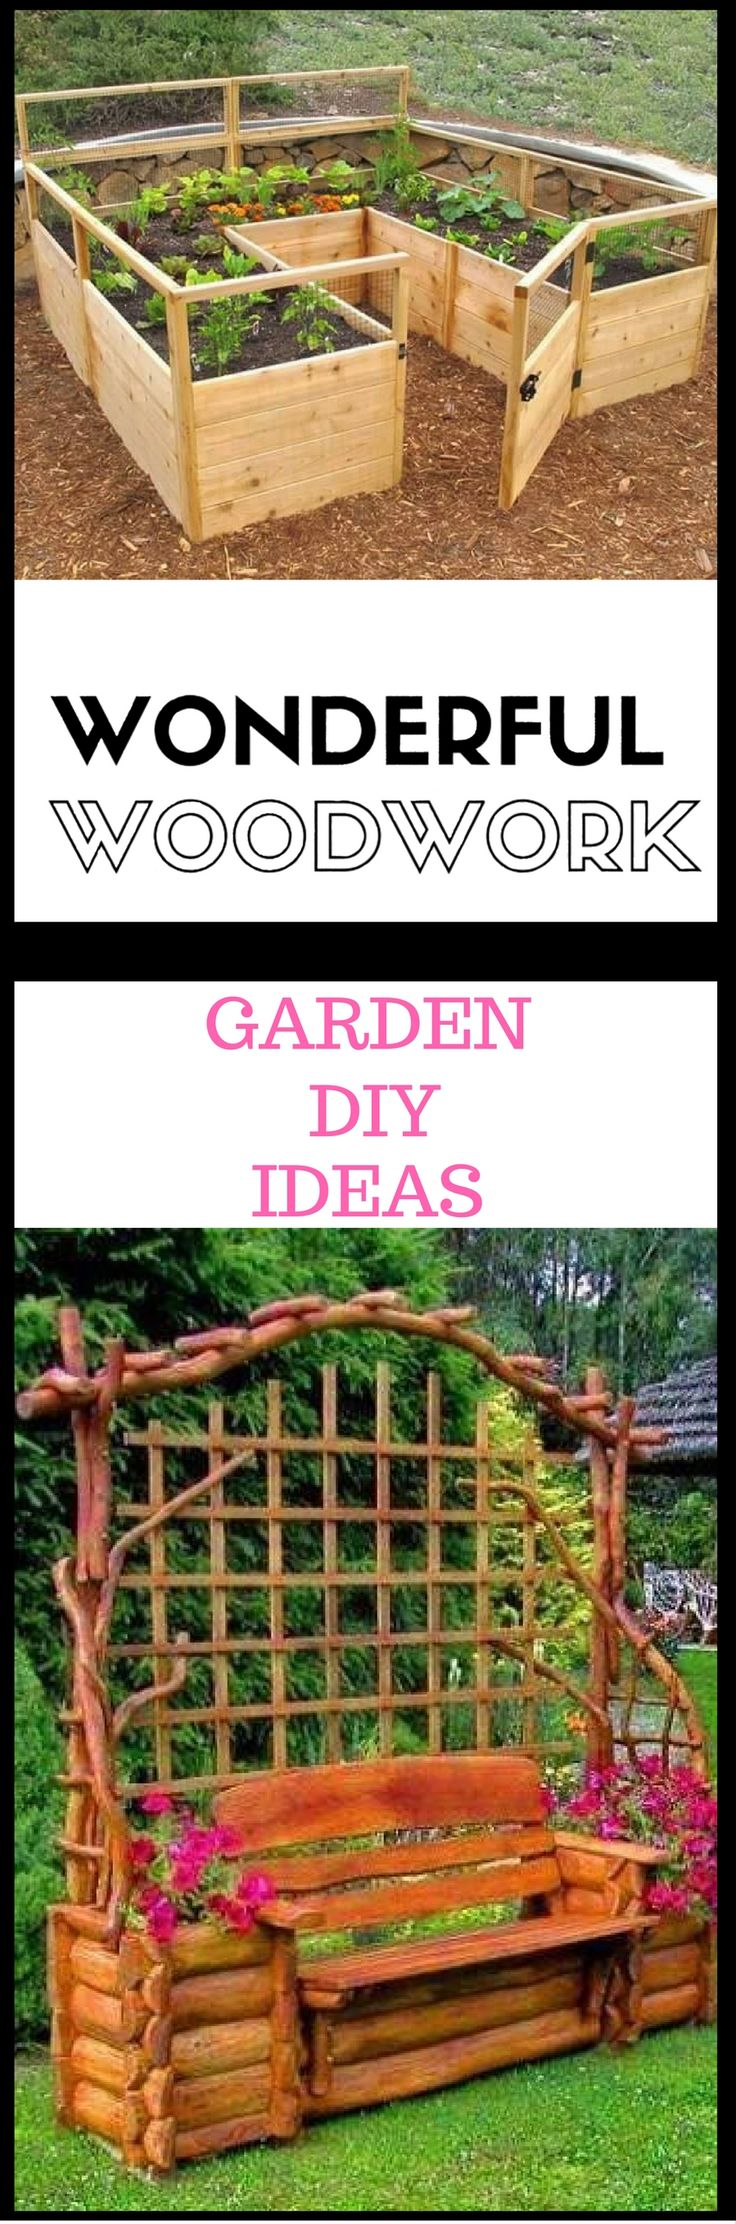 DIY Garden Project Ideas http://vid.staged.com/MJVs